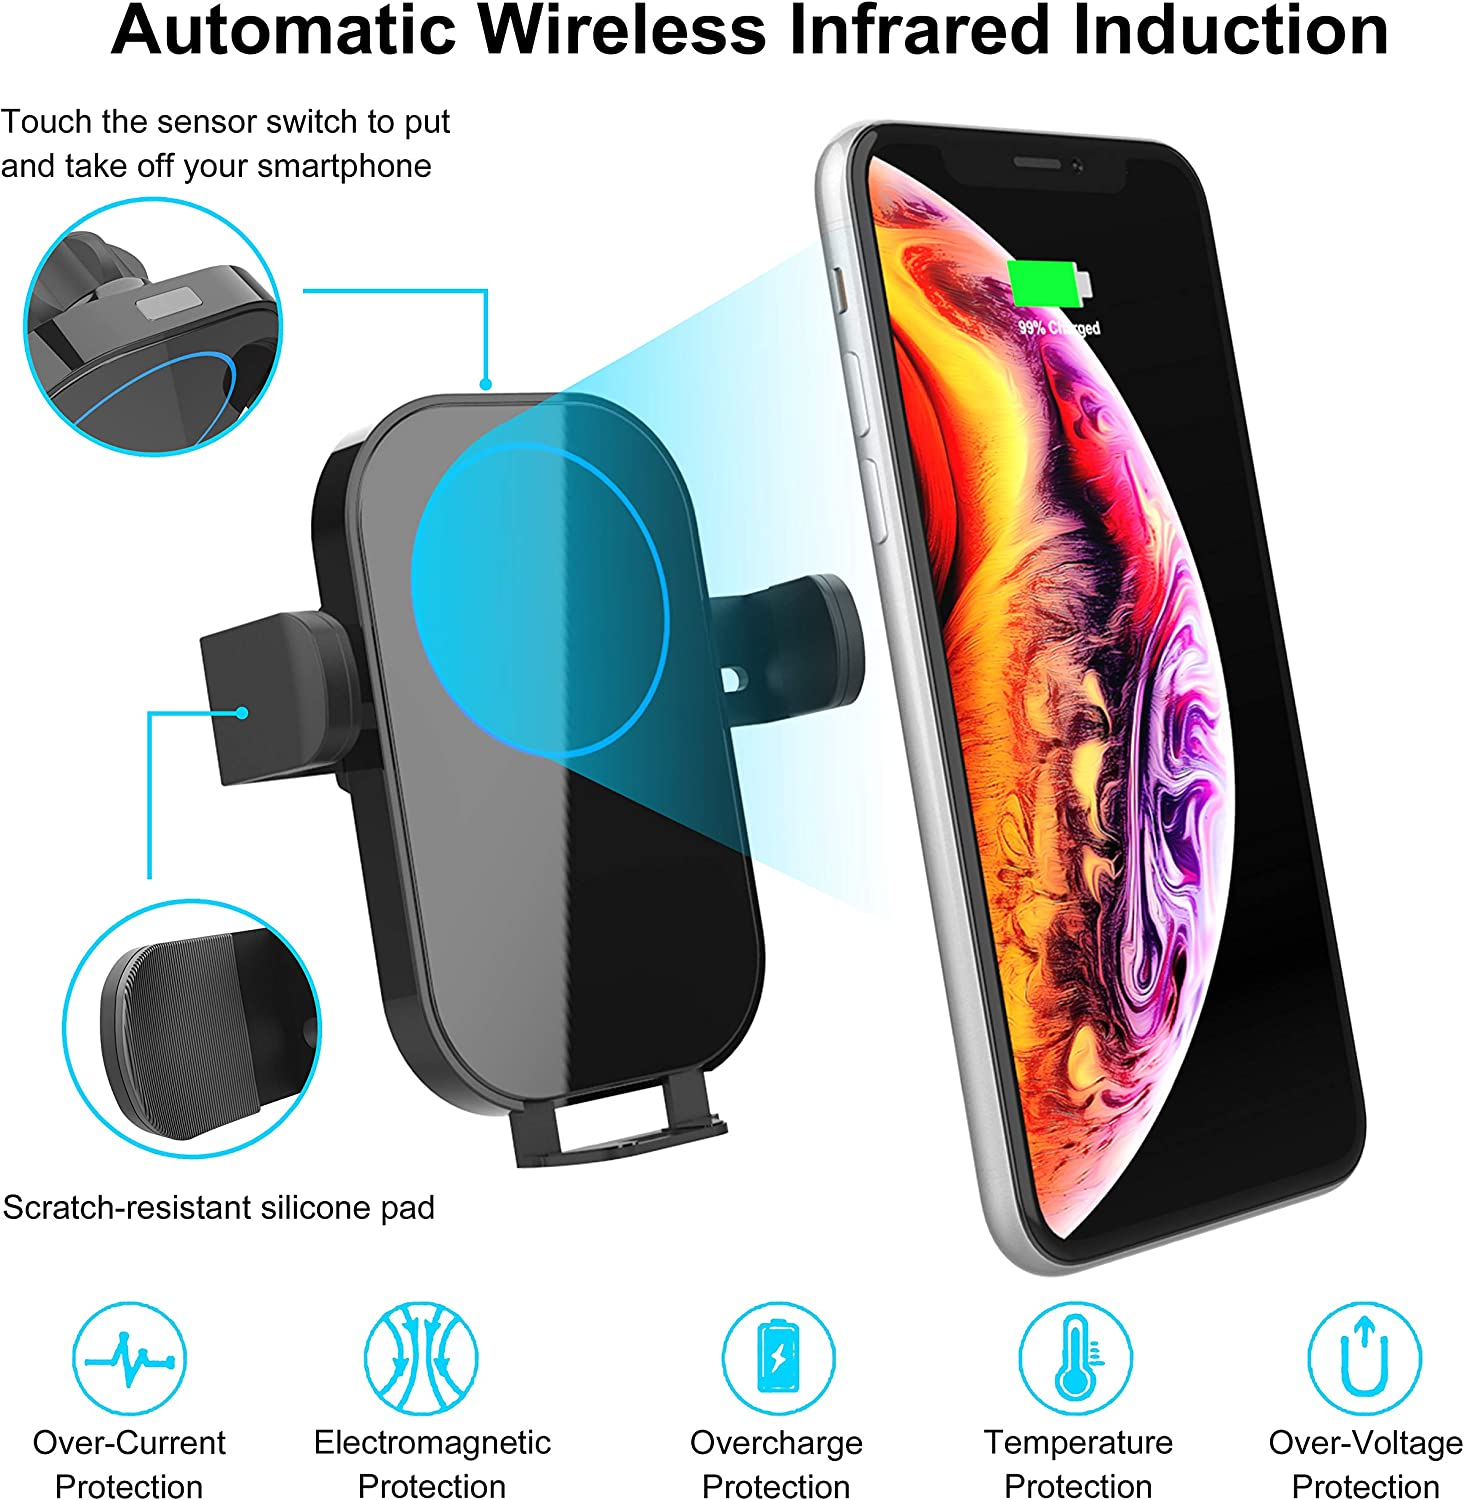 ElekBest Wireless Car Charger Windshield Dashboard Air Vent Phone Holder Compatible with iPhone 8+ 10W//7.5W Fast Charging Auto-Clamping Car Mount 360/° Rotation Galaxy